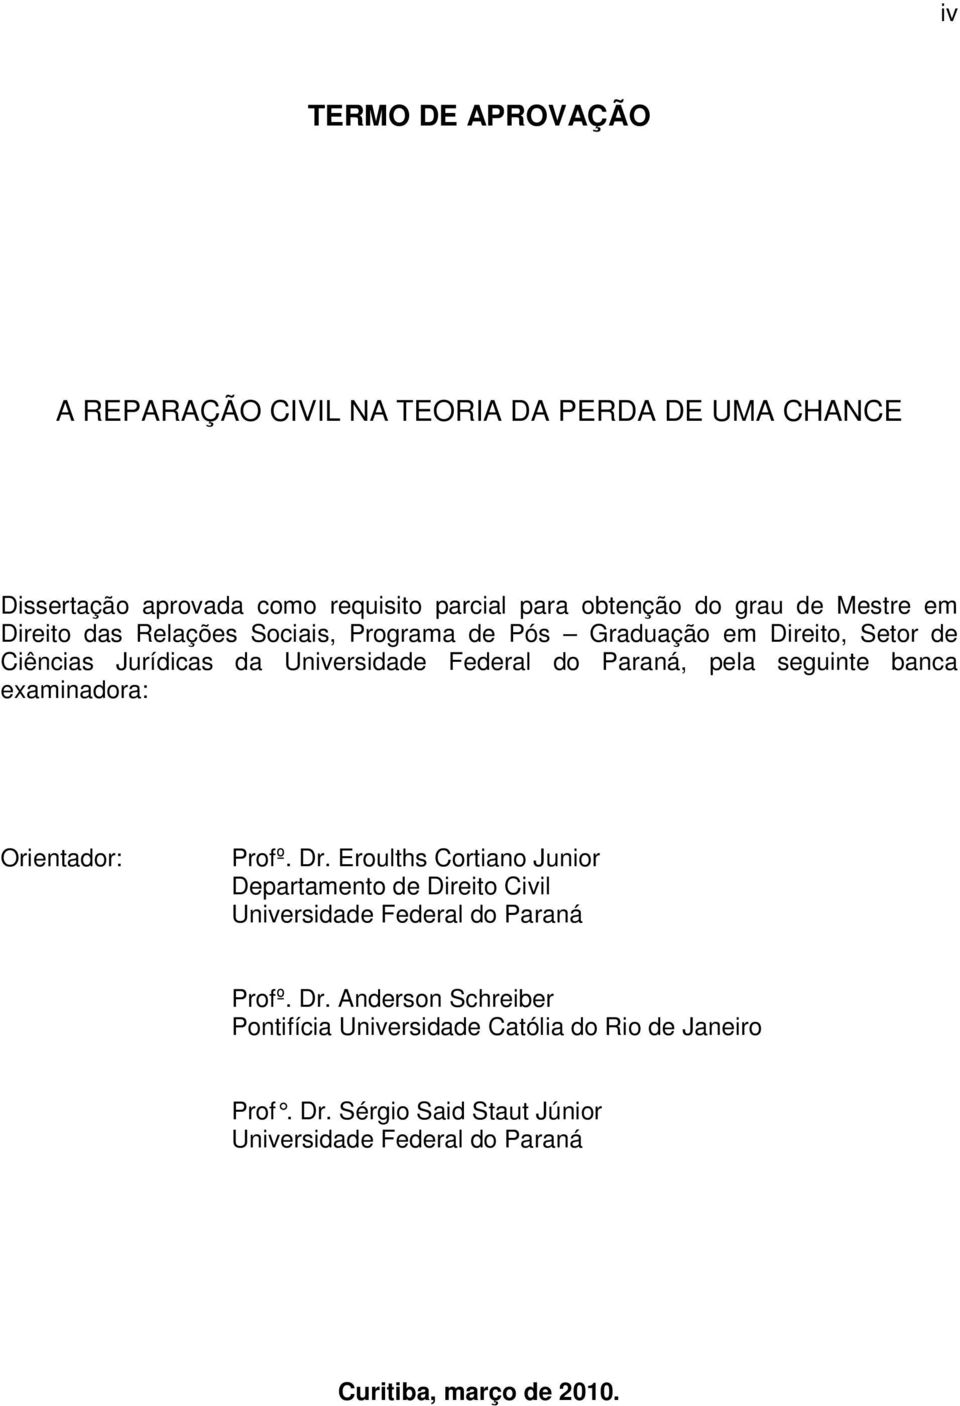 banca examinadora: Orientador: Profº. Dr. Eroulths Cortiano Junior Departamento de Direito Civil Universidade Federal do Paraná Profº. Dr. Anderson Schreiber Pontifícia Universidade Católia do Rio de Janeiro Prof.